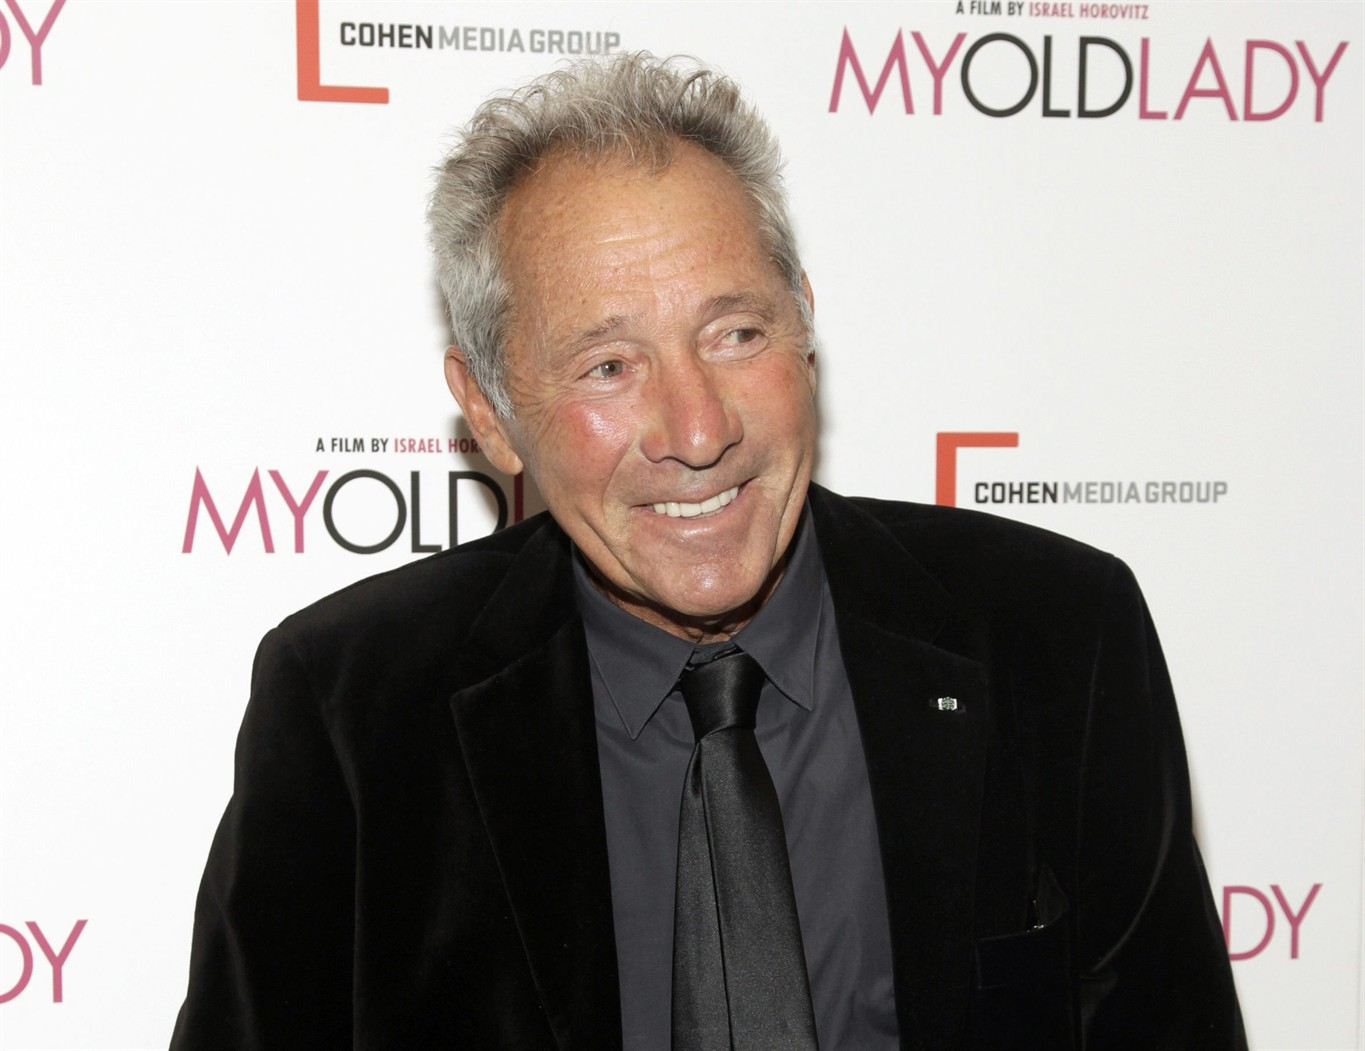 Women Accuse Playwright Israel Horovitz of Sexual Misconduct, Including Assault and Rape